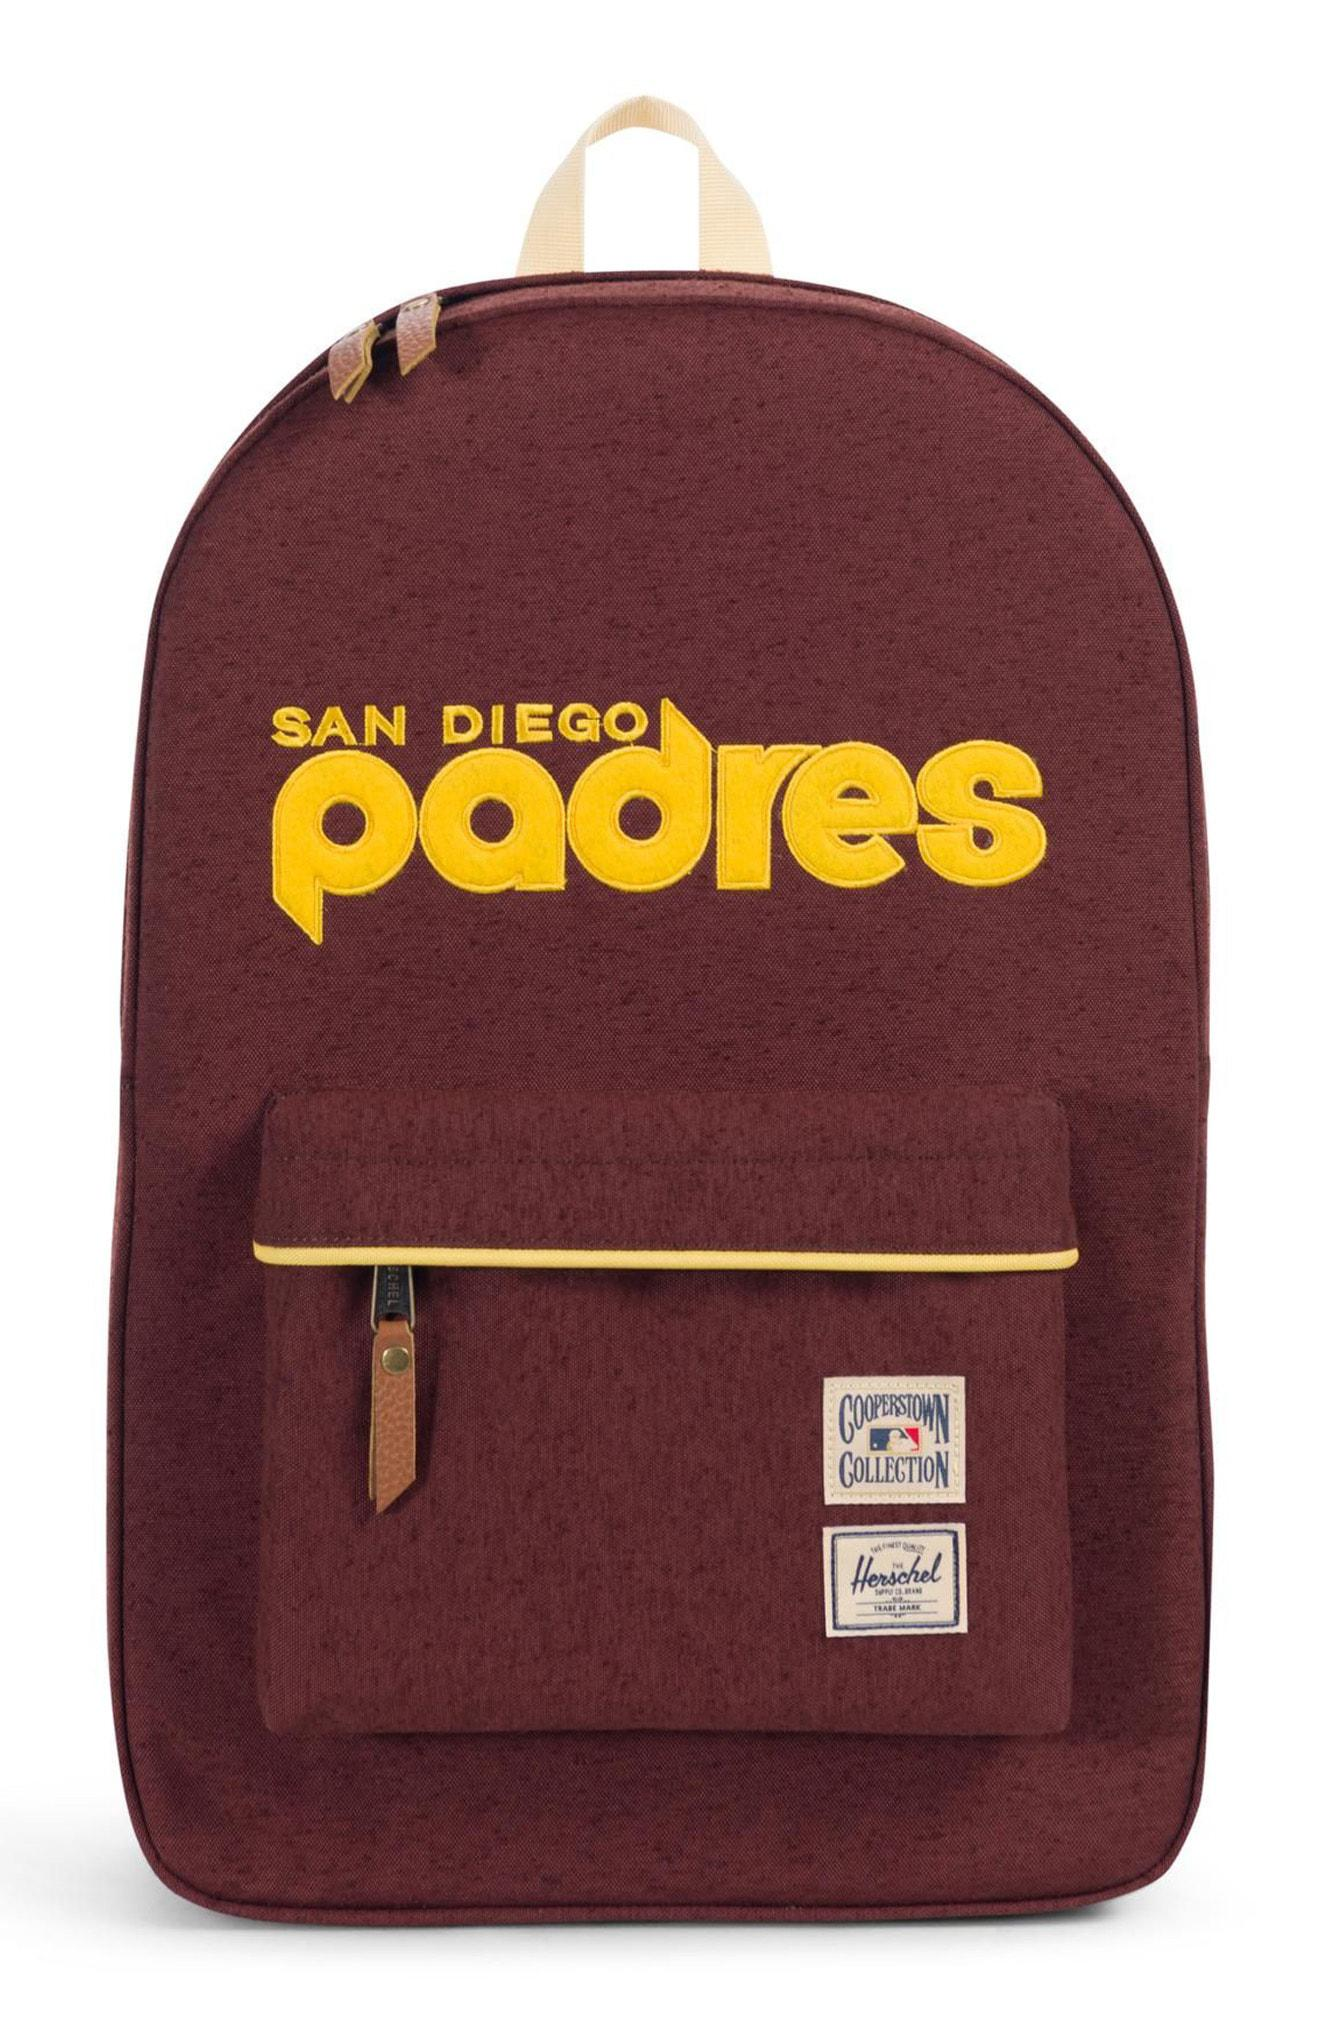 5e21a9a0eb53 Purple Heritage - Mlb Cooperstown Collection Backpack for Men - Lyst. View  fullscreen